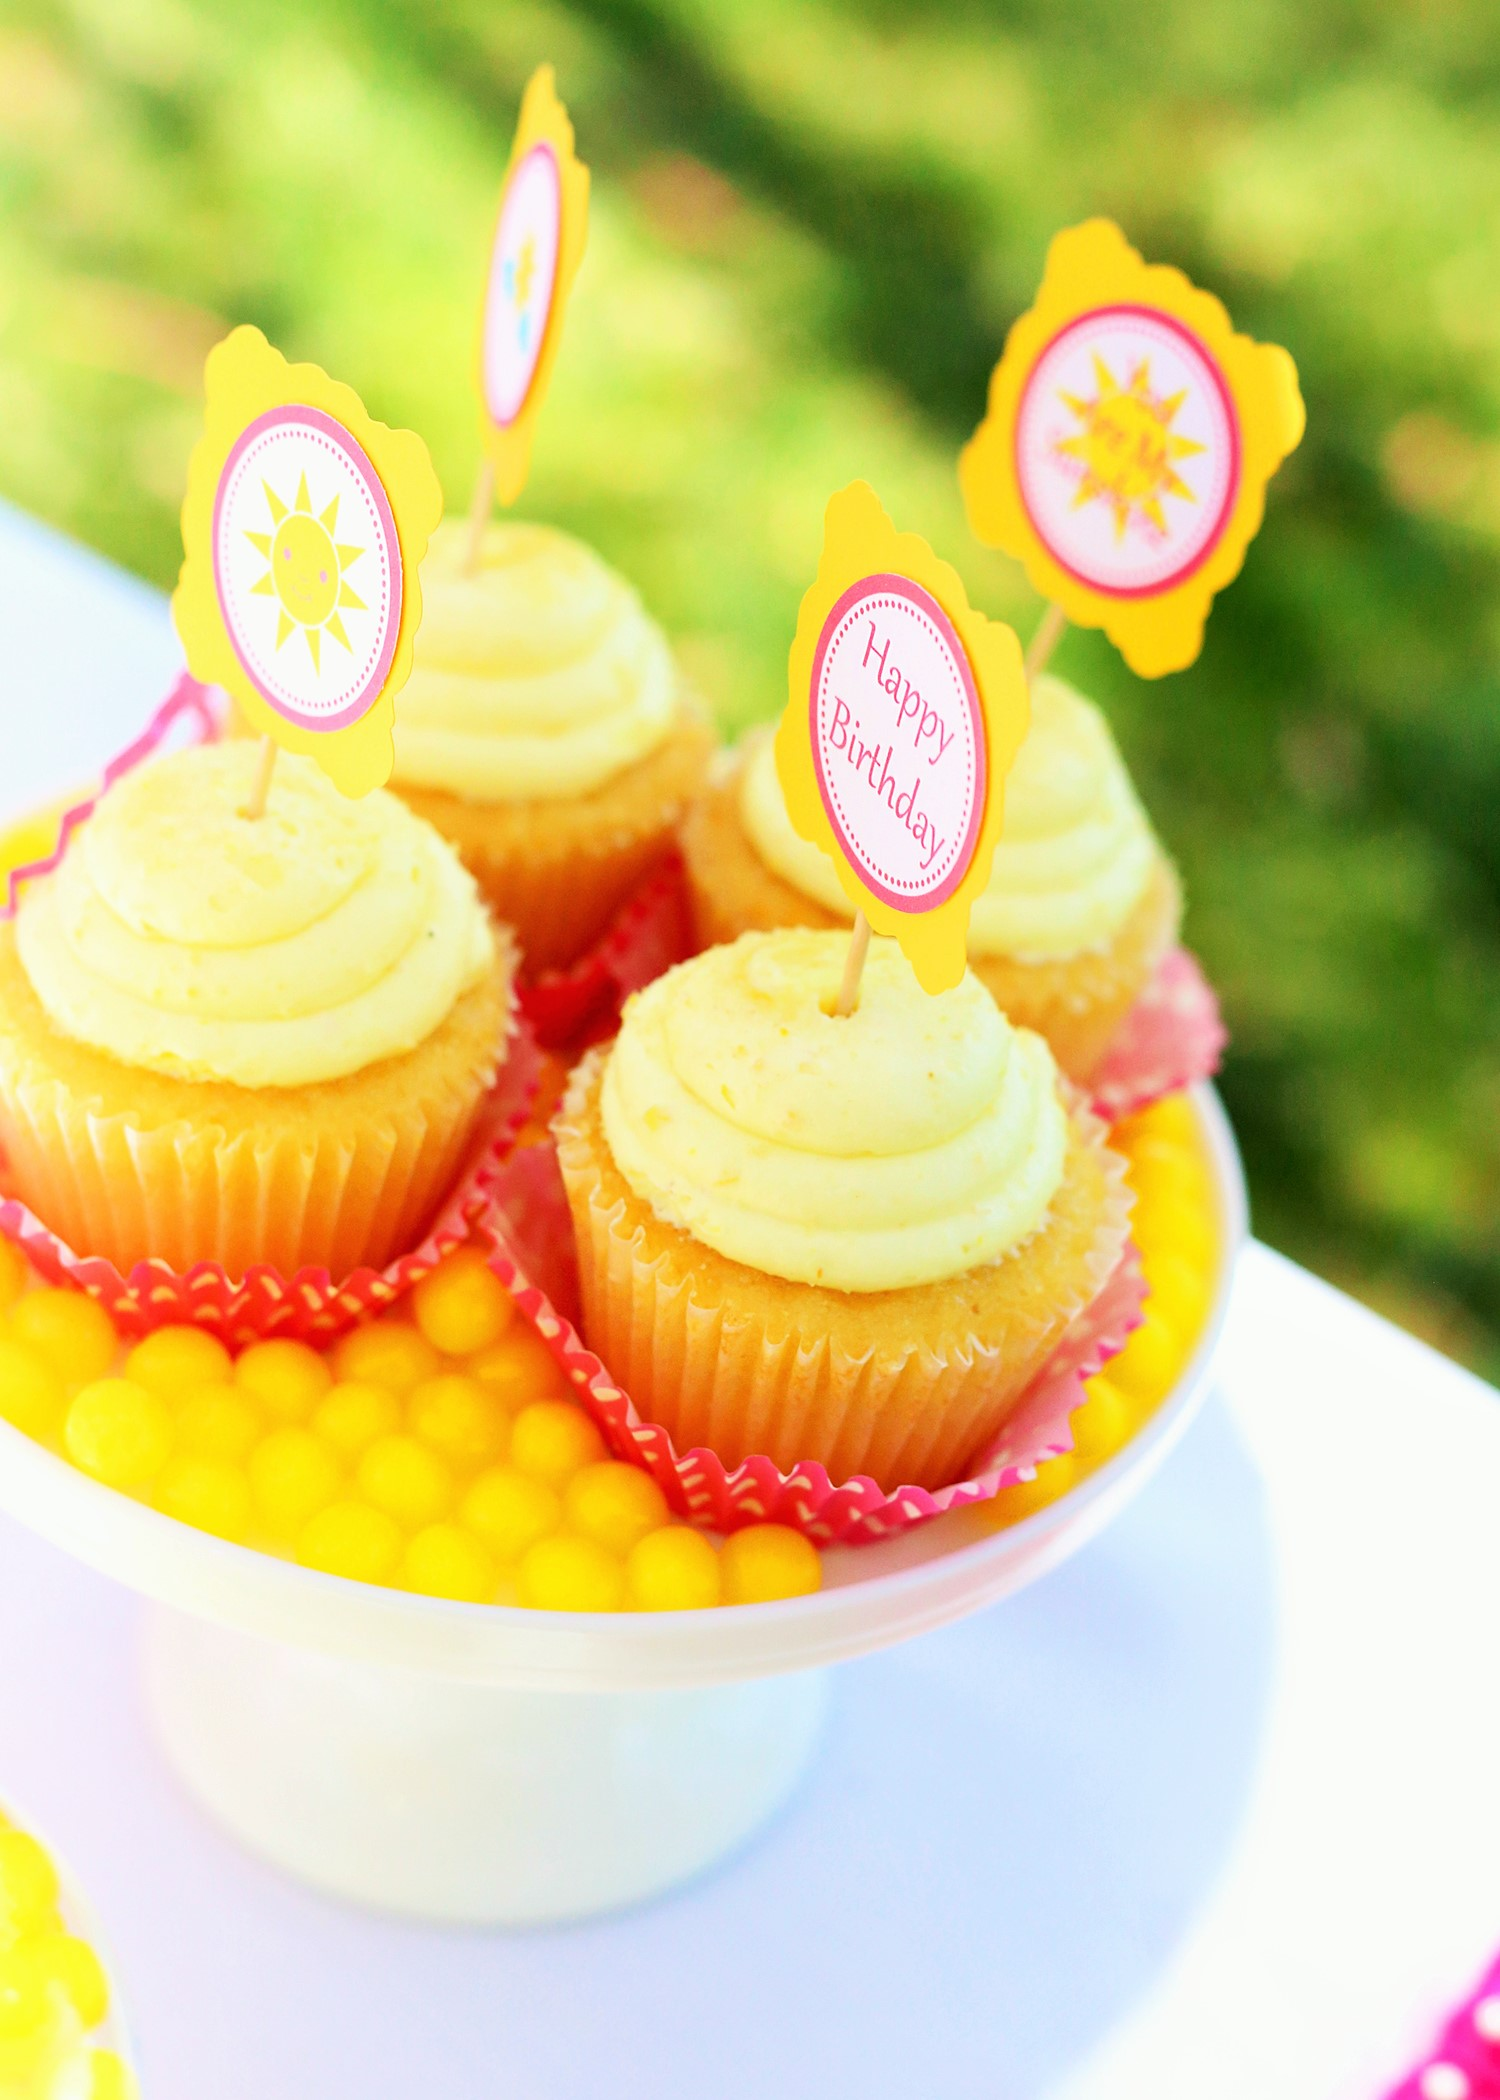 sunshine and lemonade party cupcakes with toppers